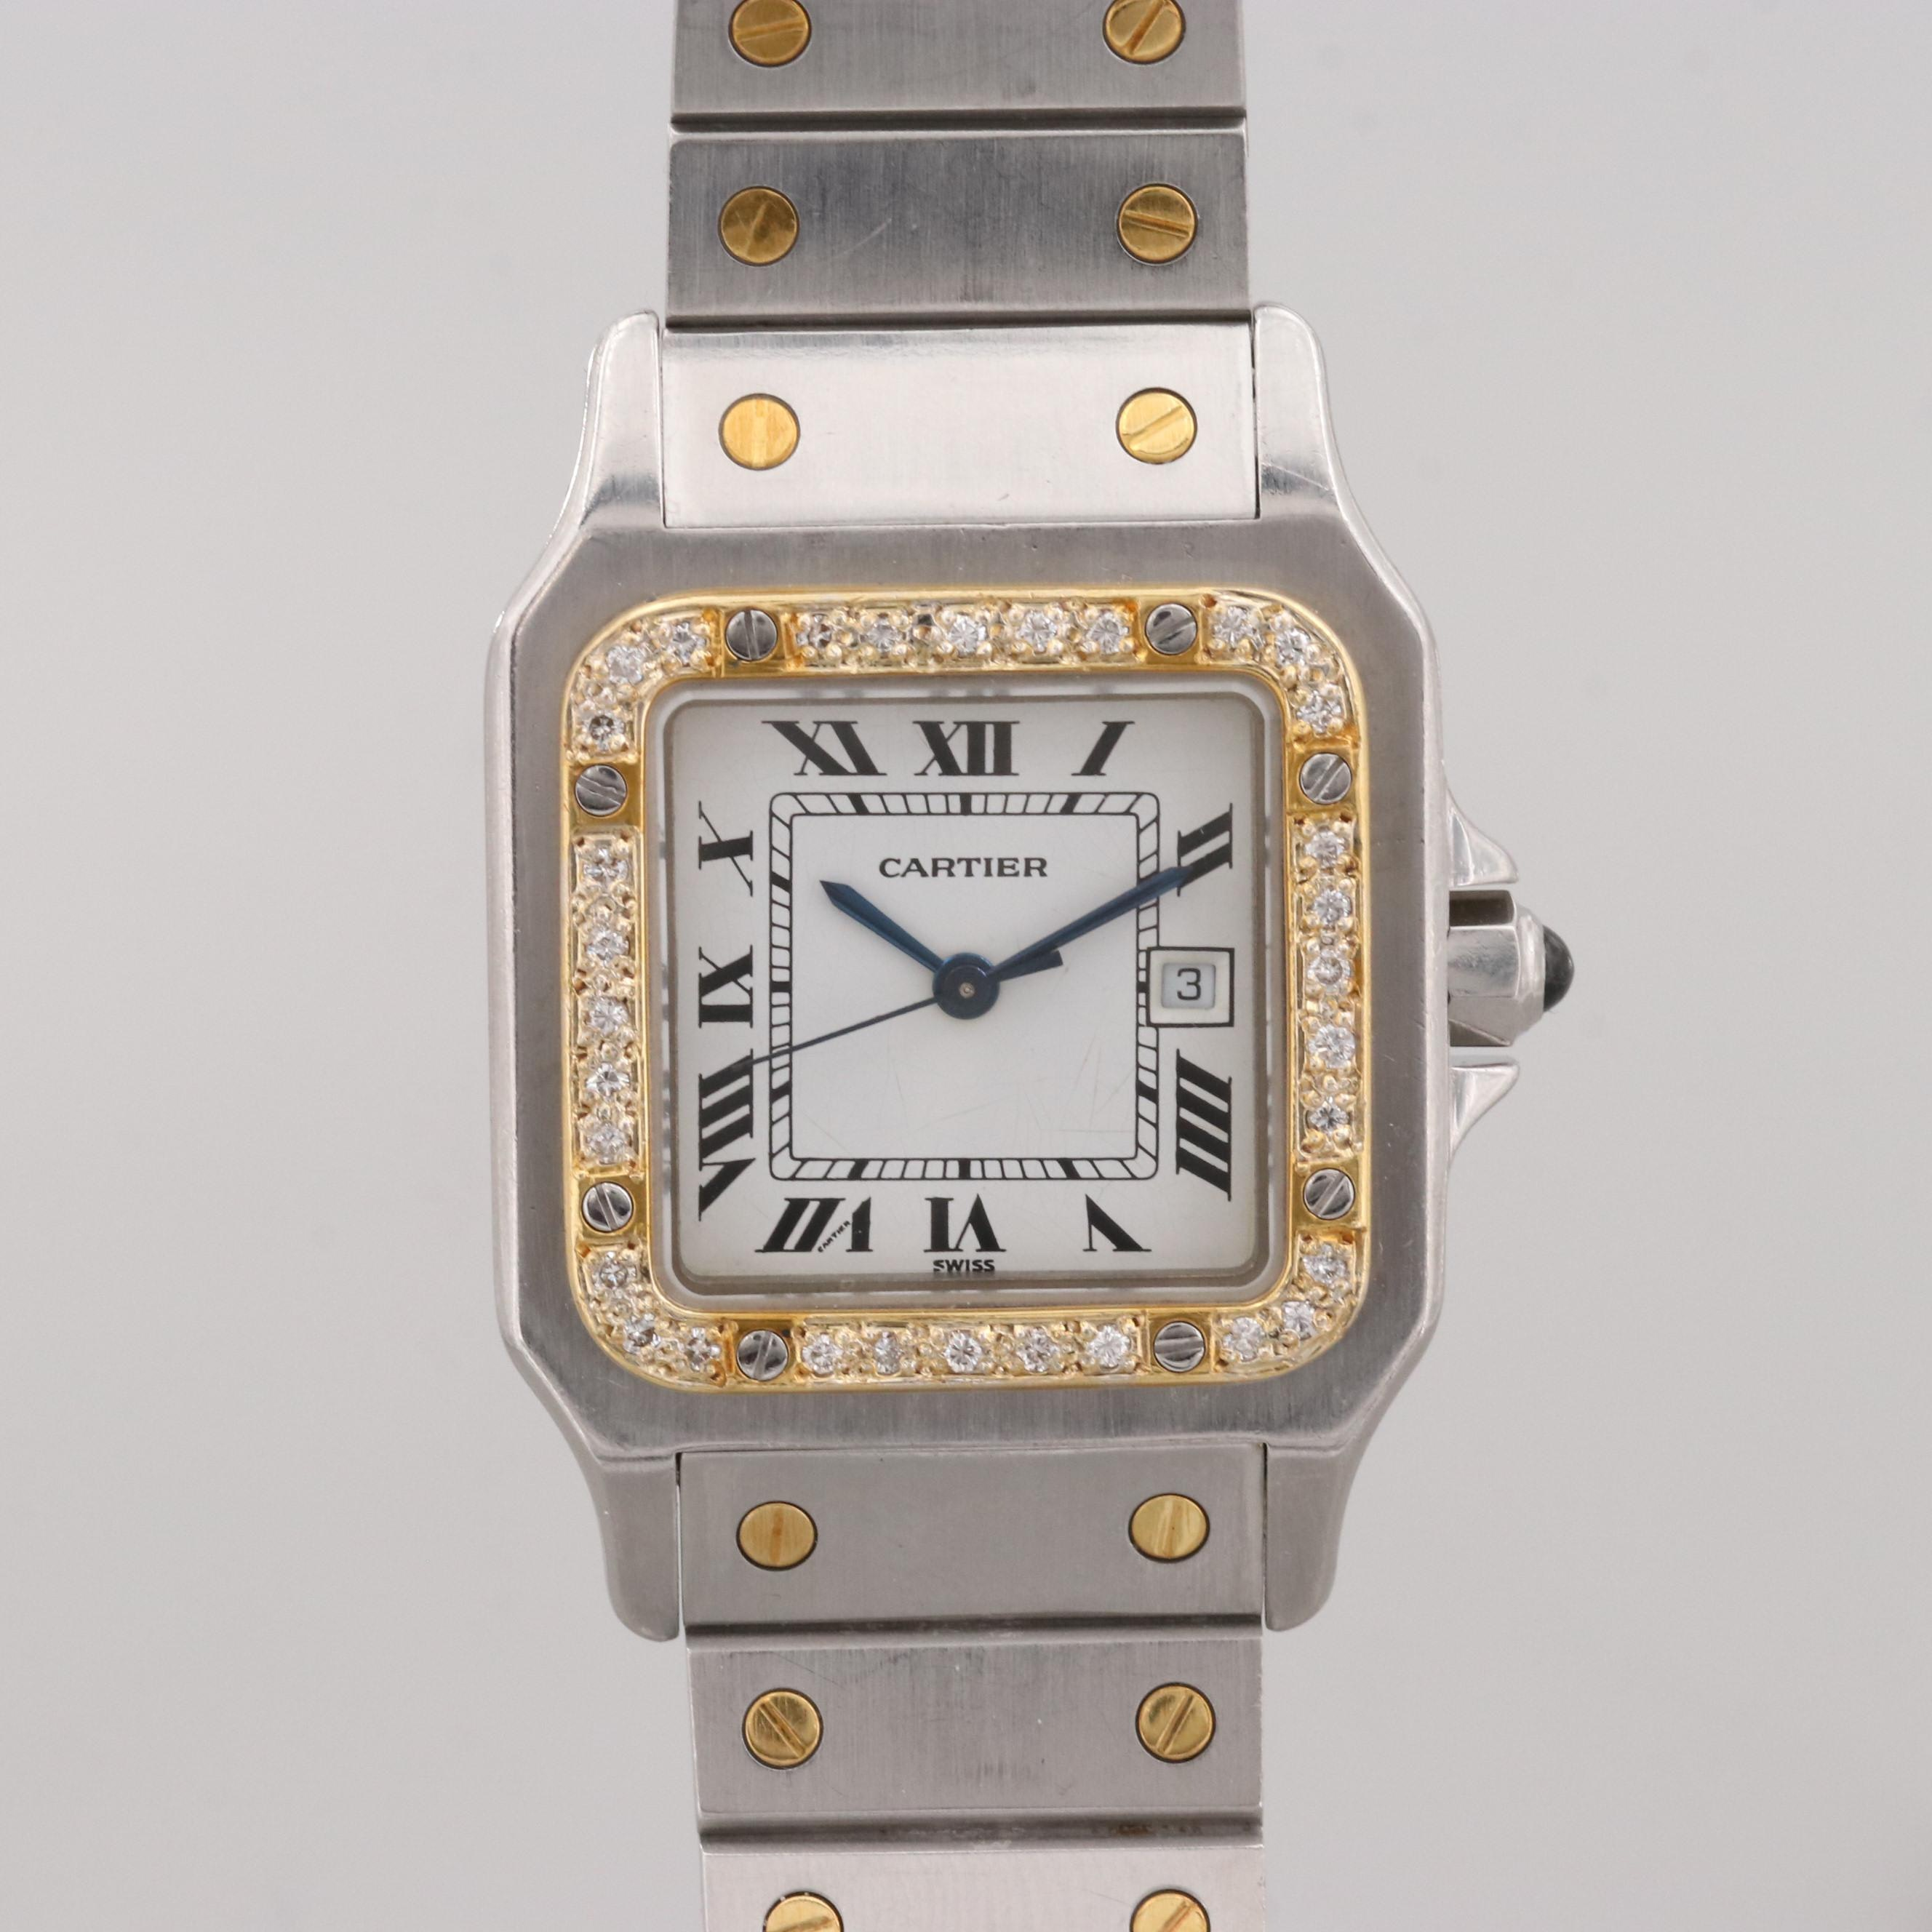 Cartier-Santos de Cartier Automatic Wristwatch With Custom Diamond Bezel